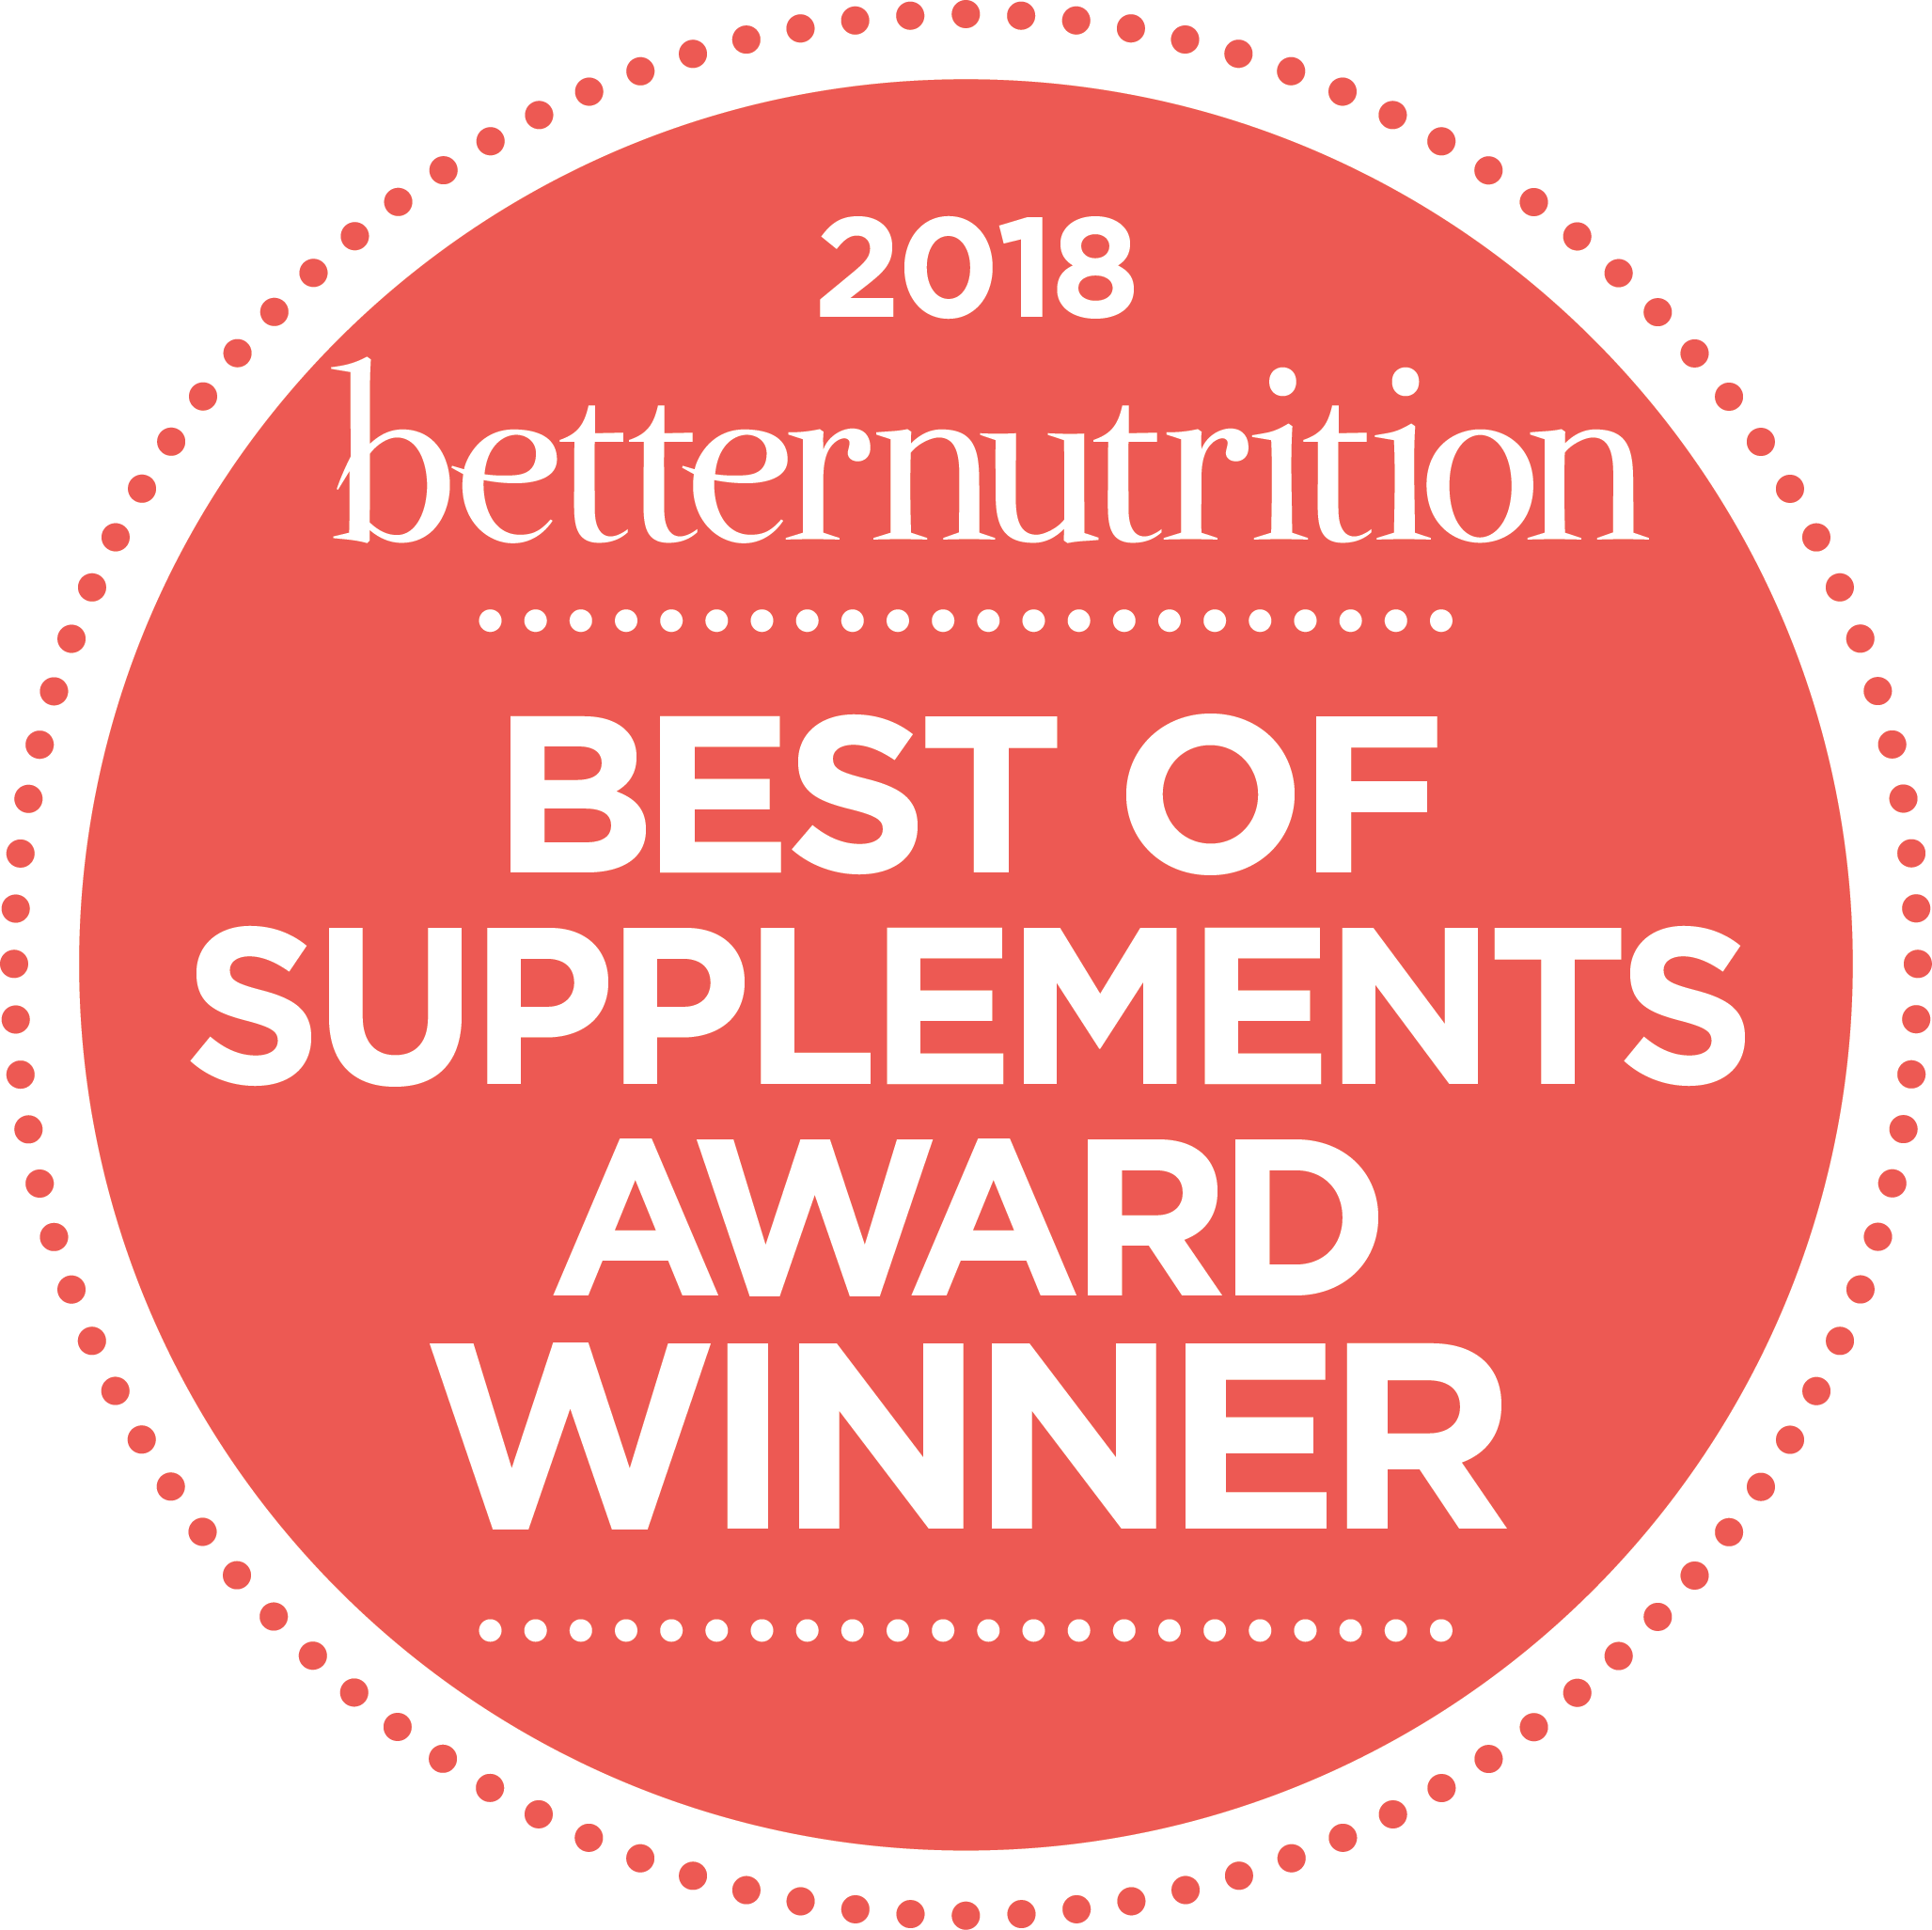 BetterNutrition Best Supplement 2018 Winner Logo